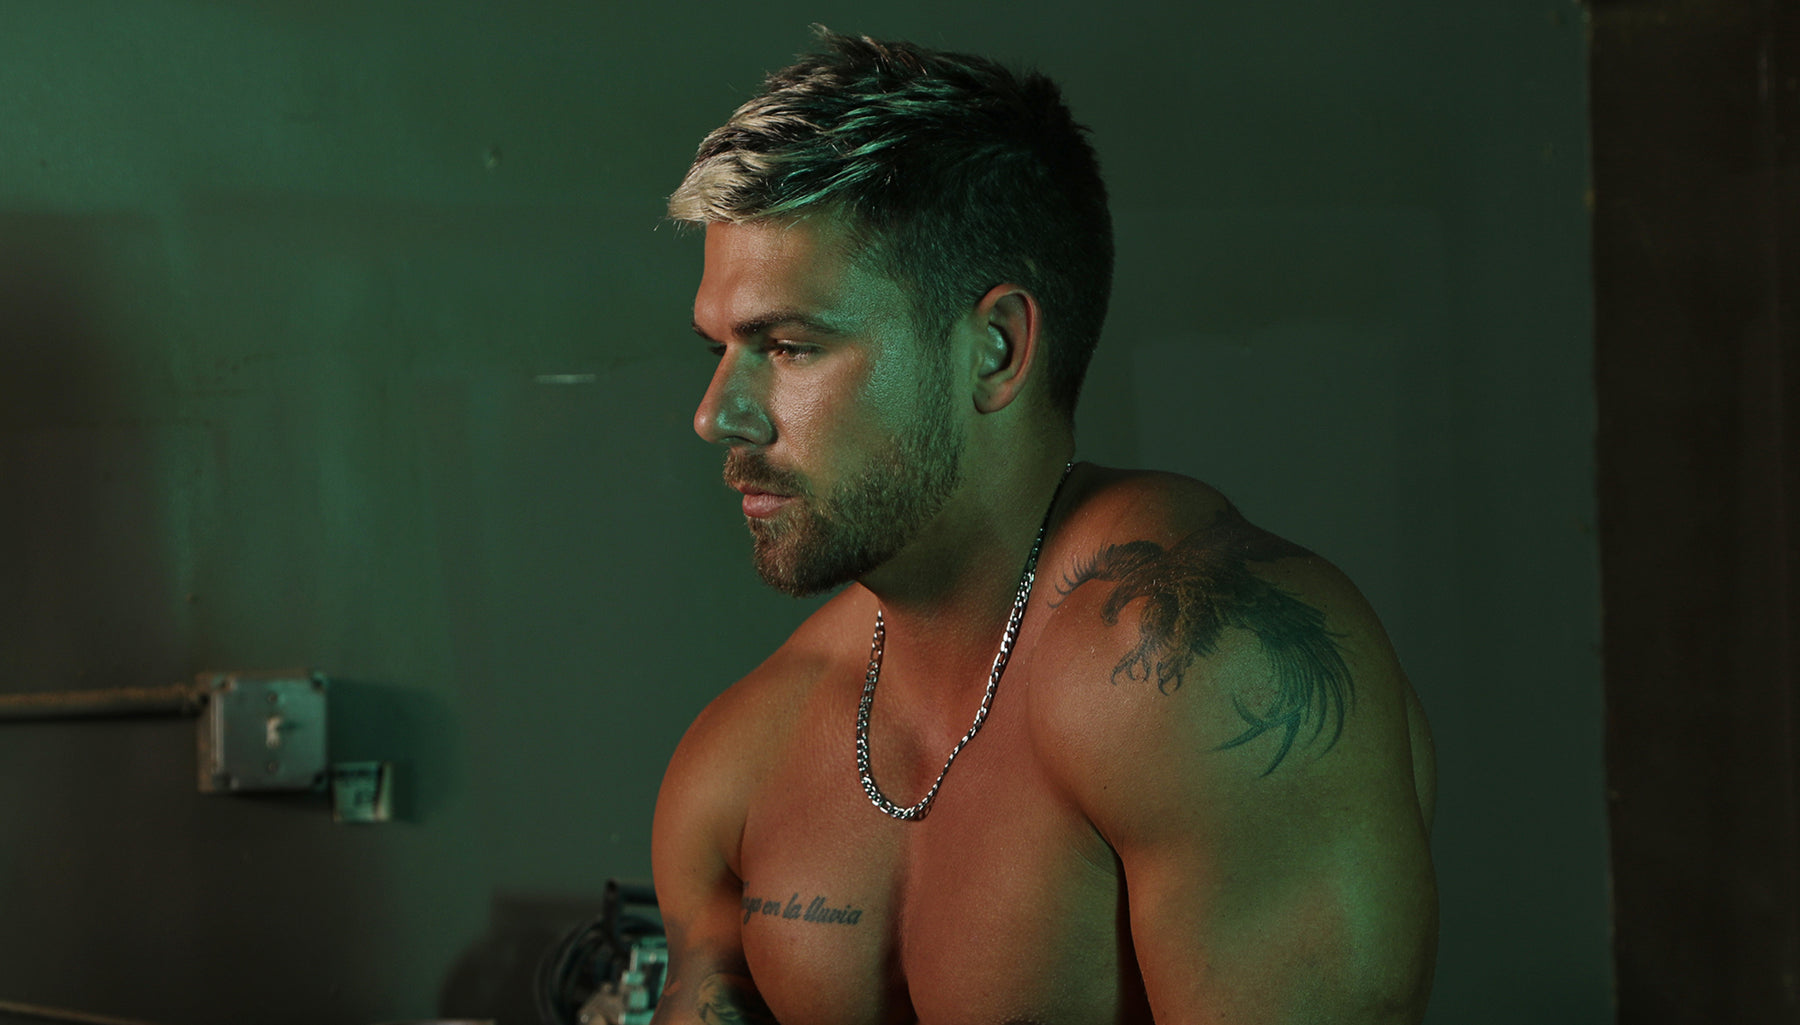 New Images with Joss Mooney